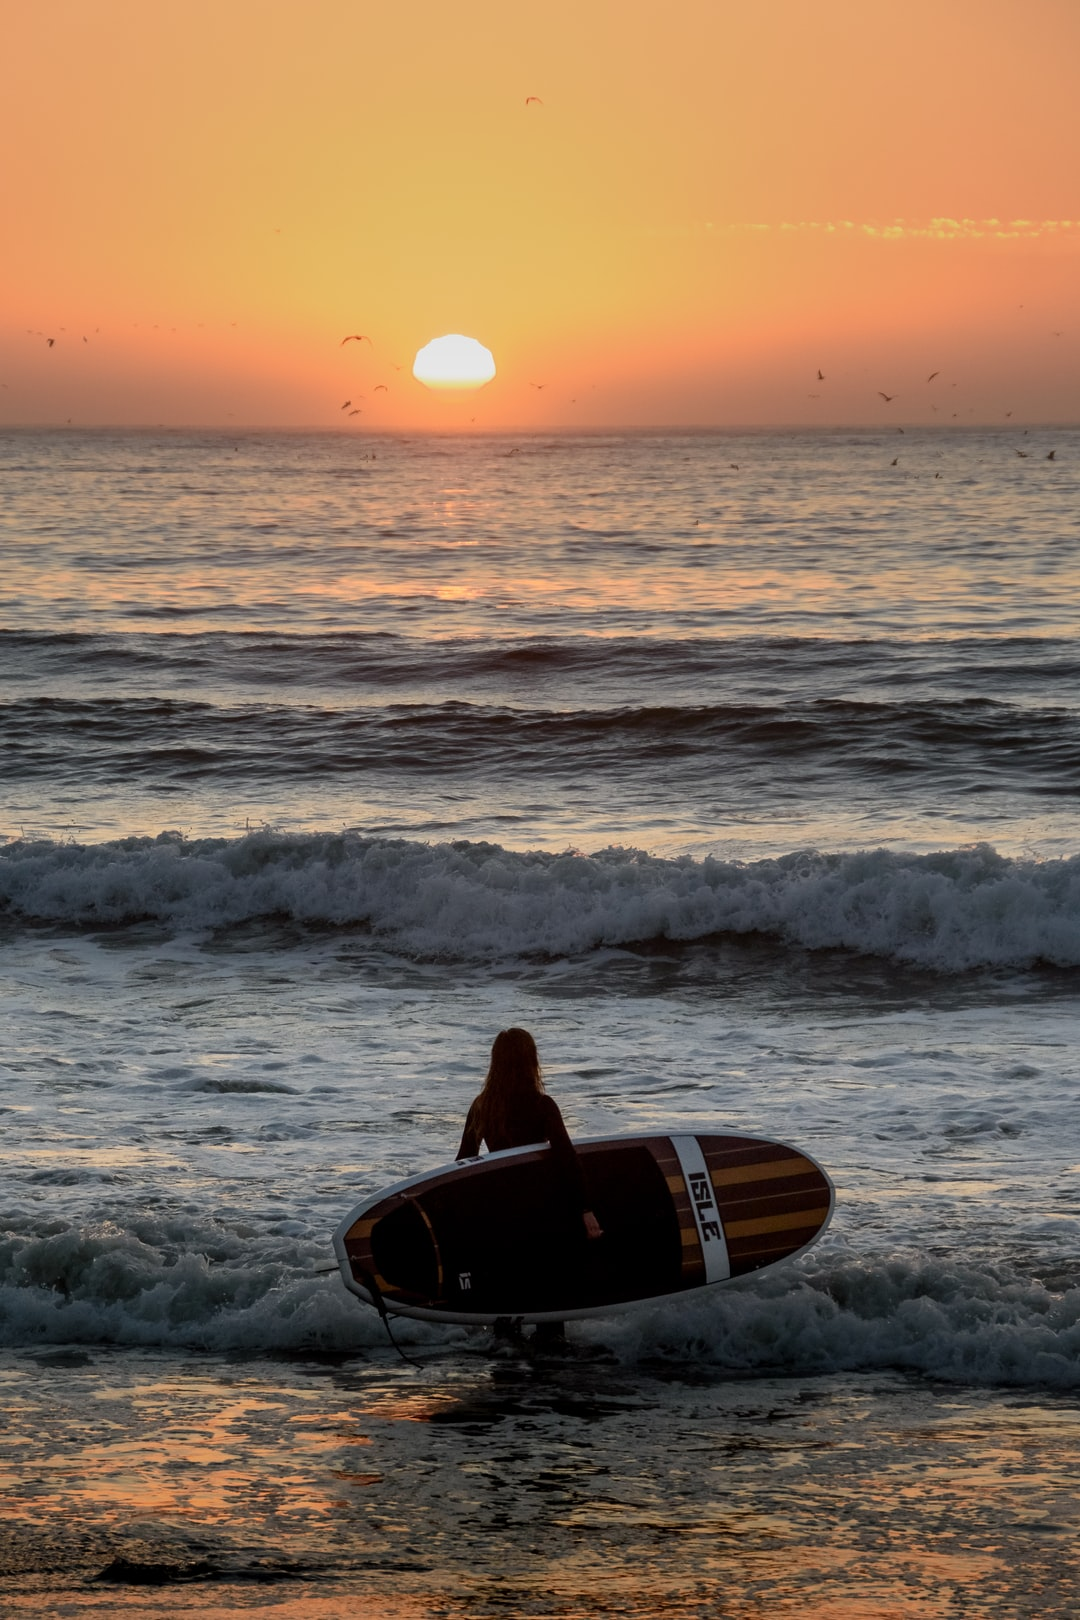 Woman surfer during sunset